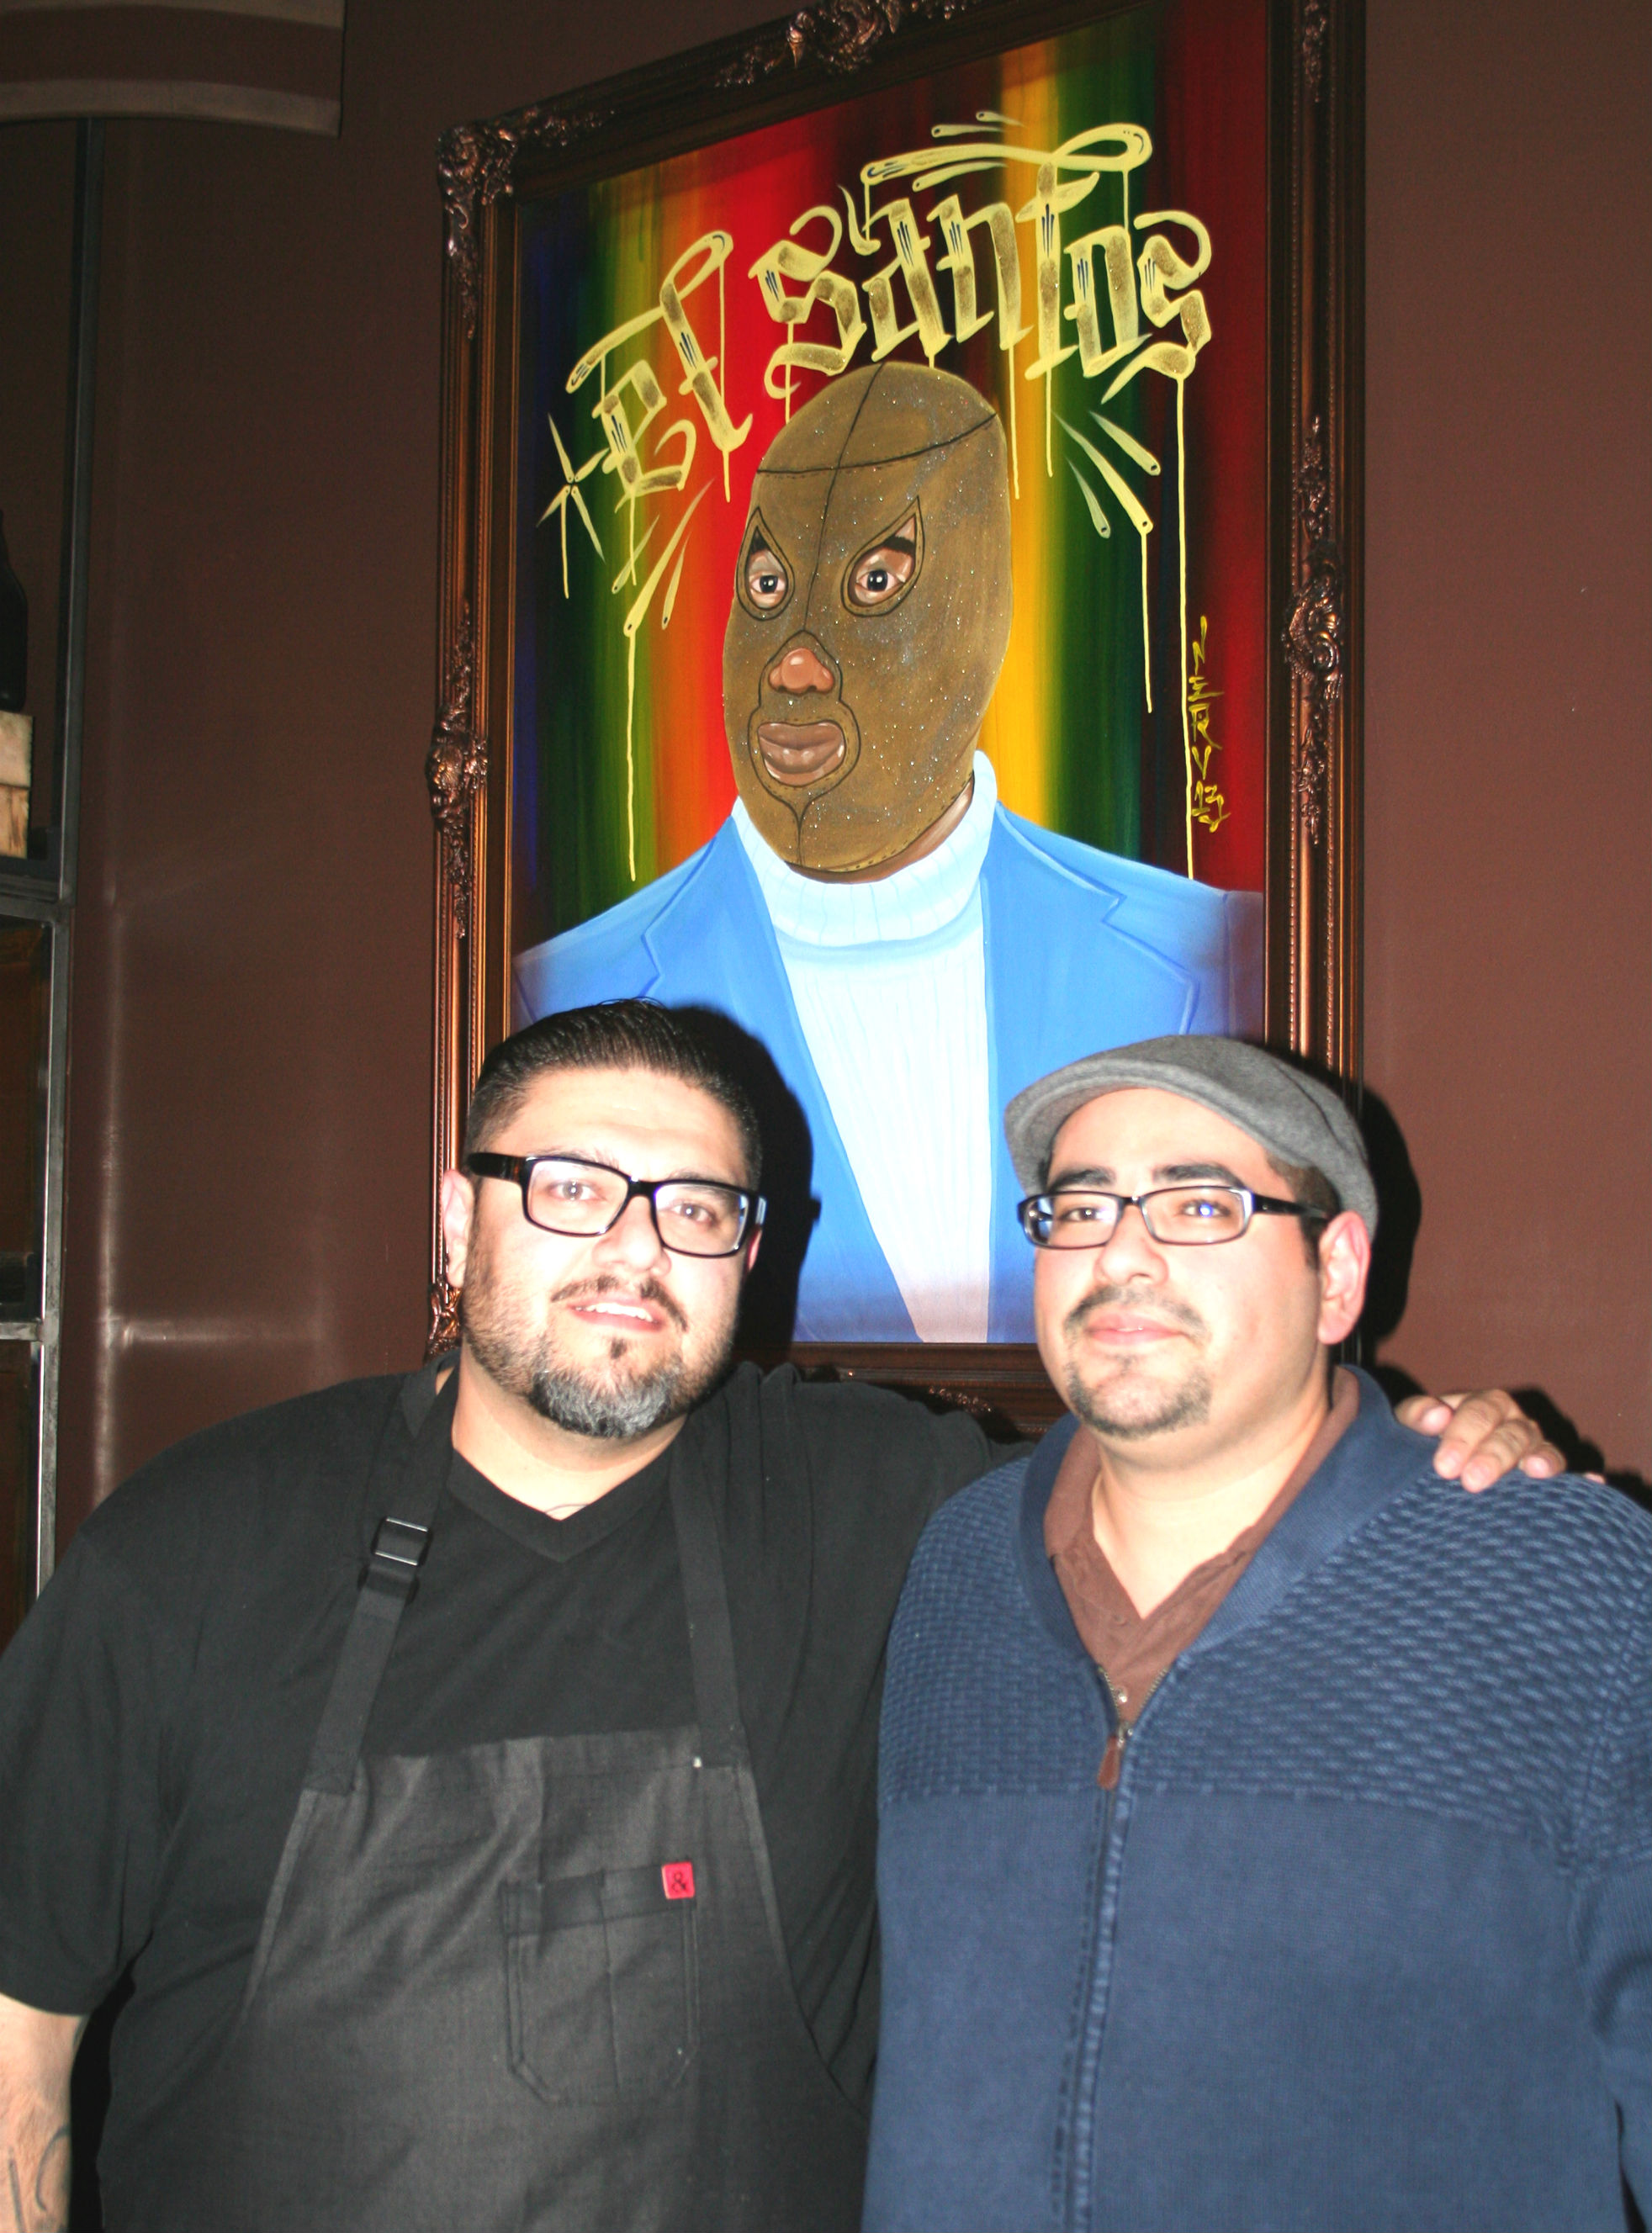 Chef Ortega with Art Rodriguez